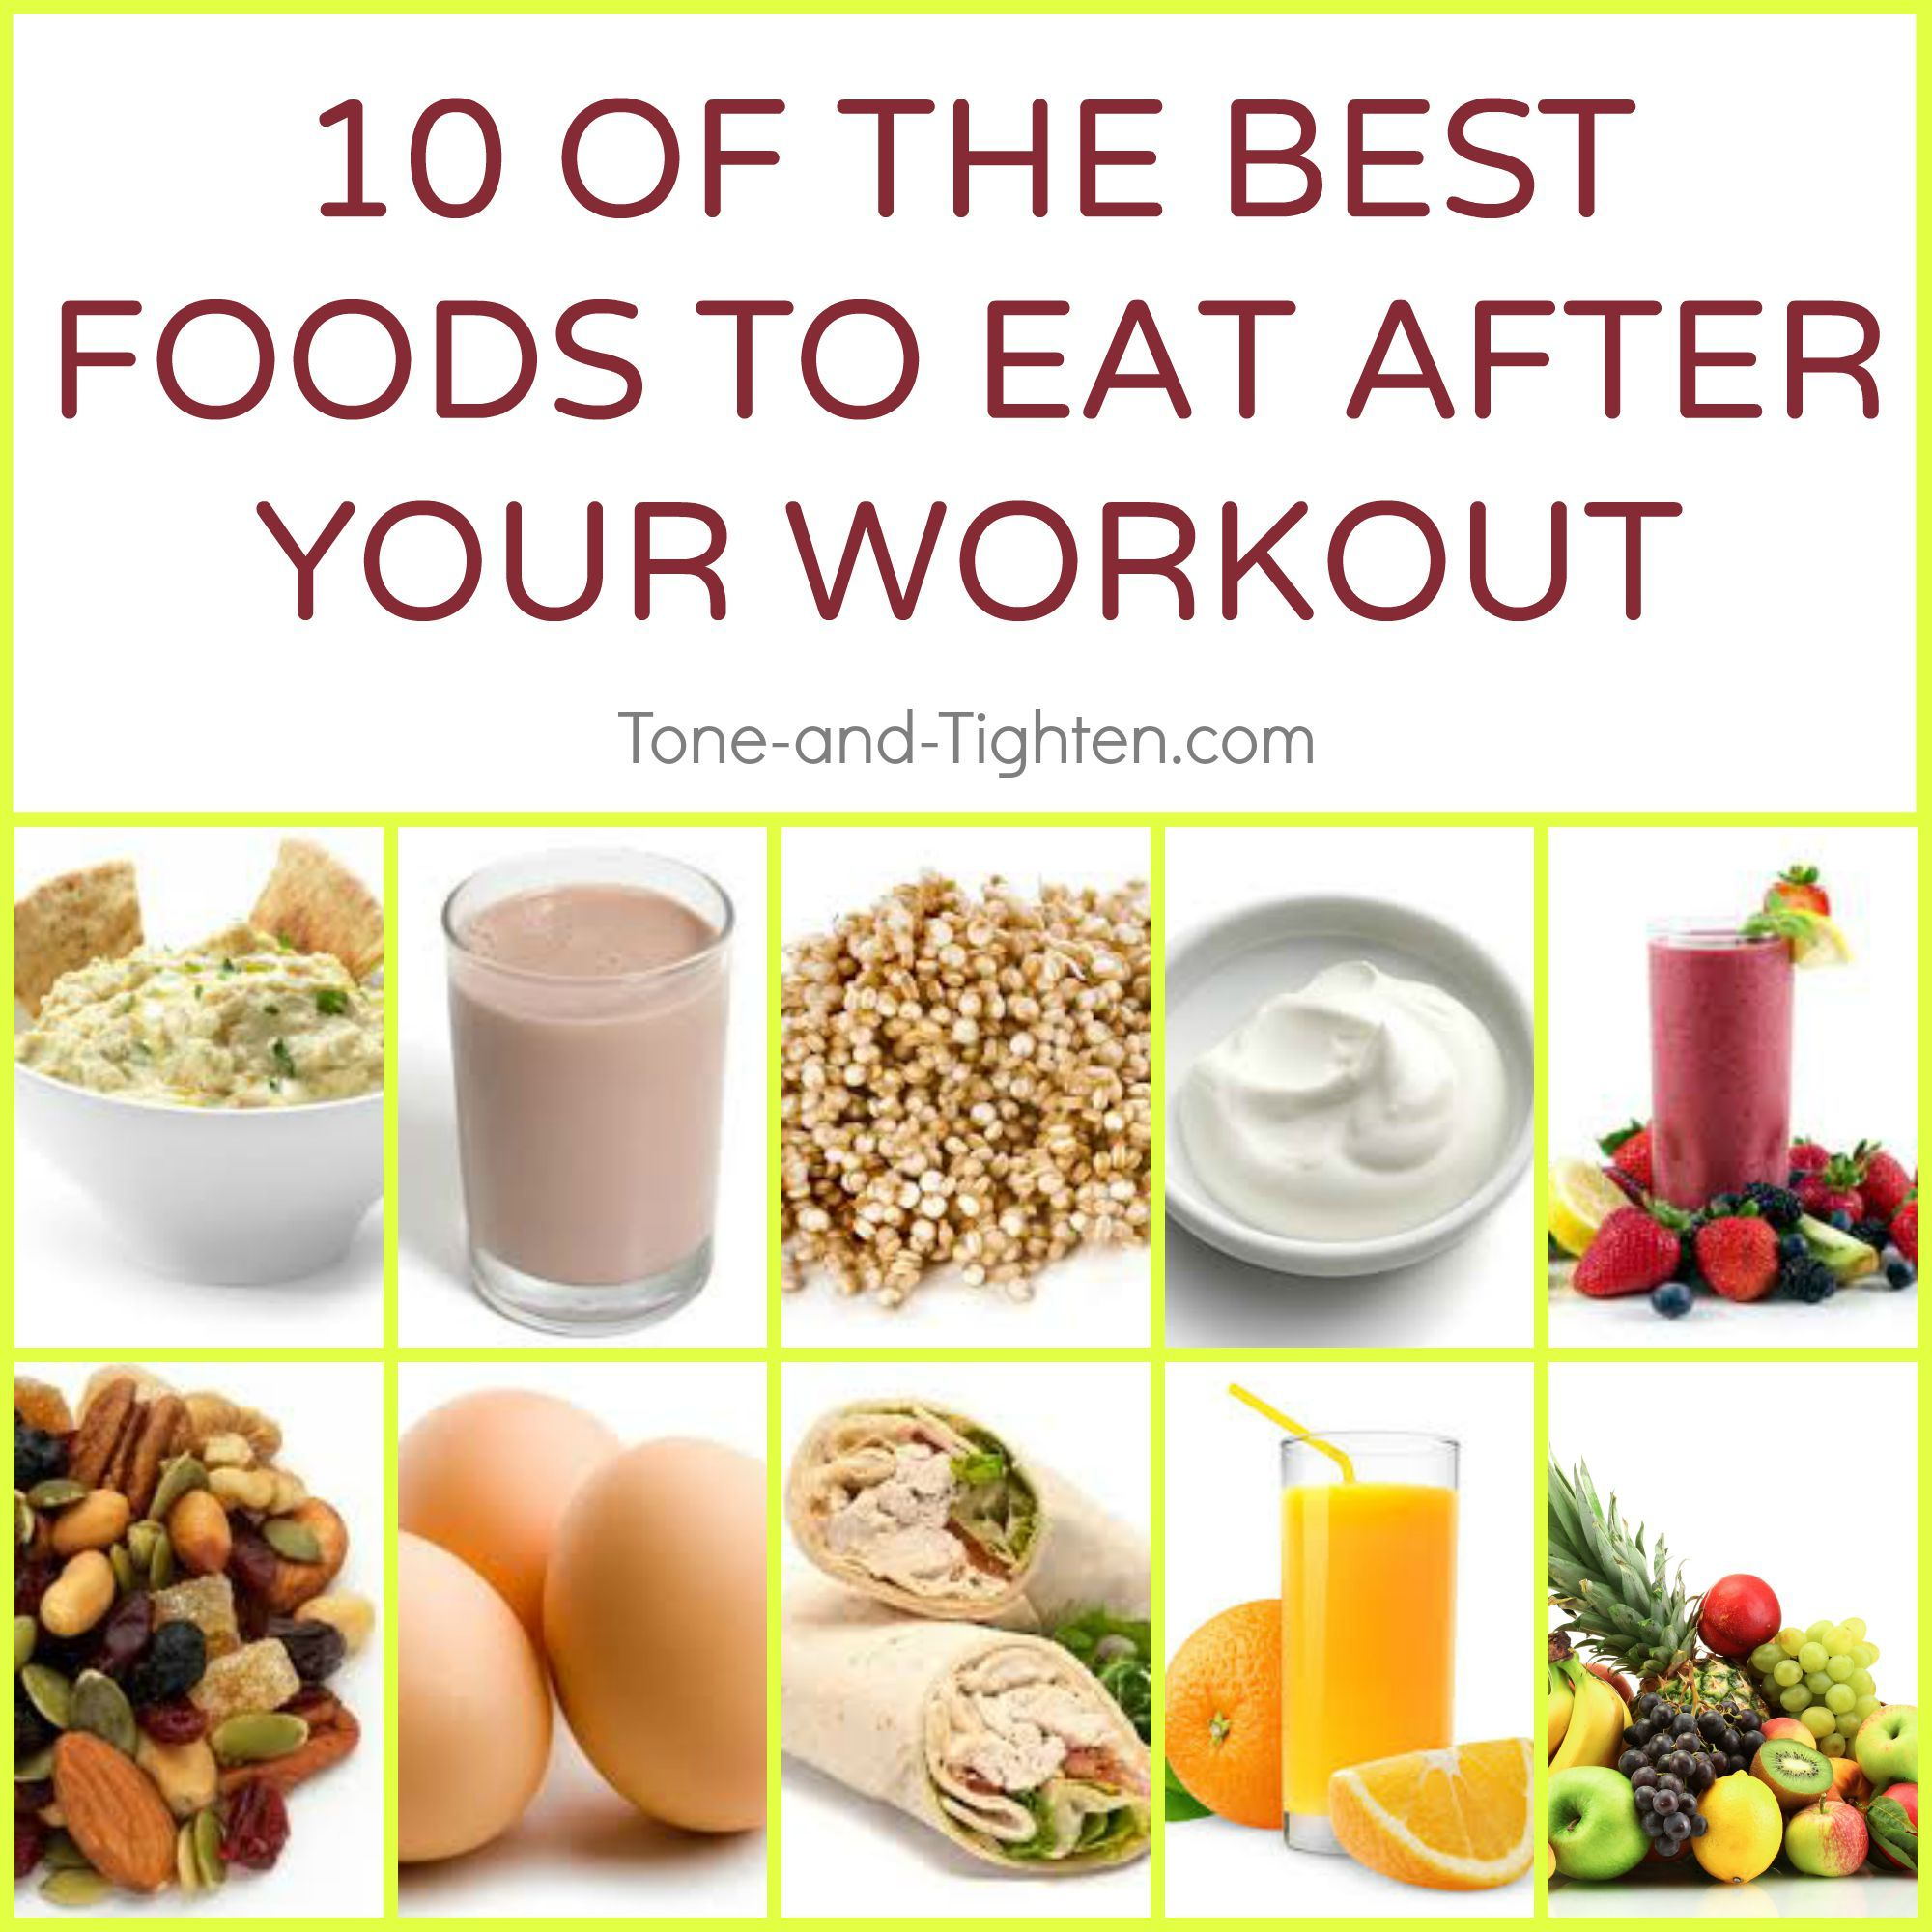 Best Food To Eat After A Workout Workout Food Good Foods To Eat Foods To Eat